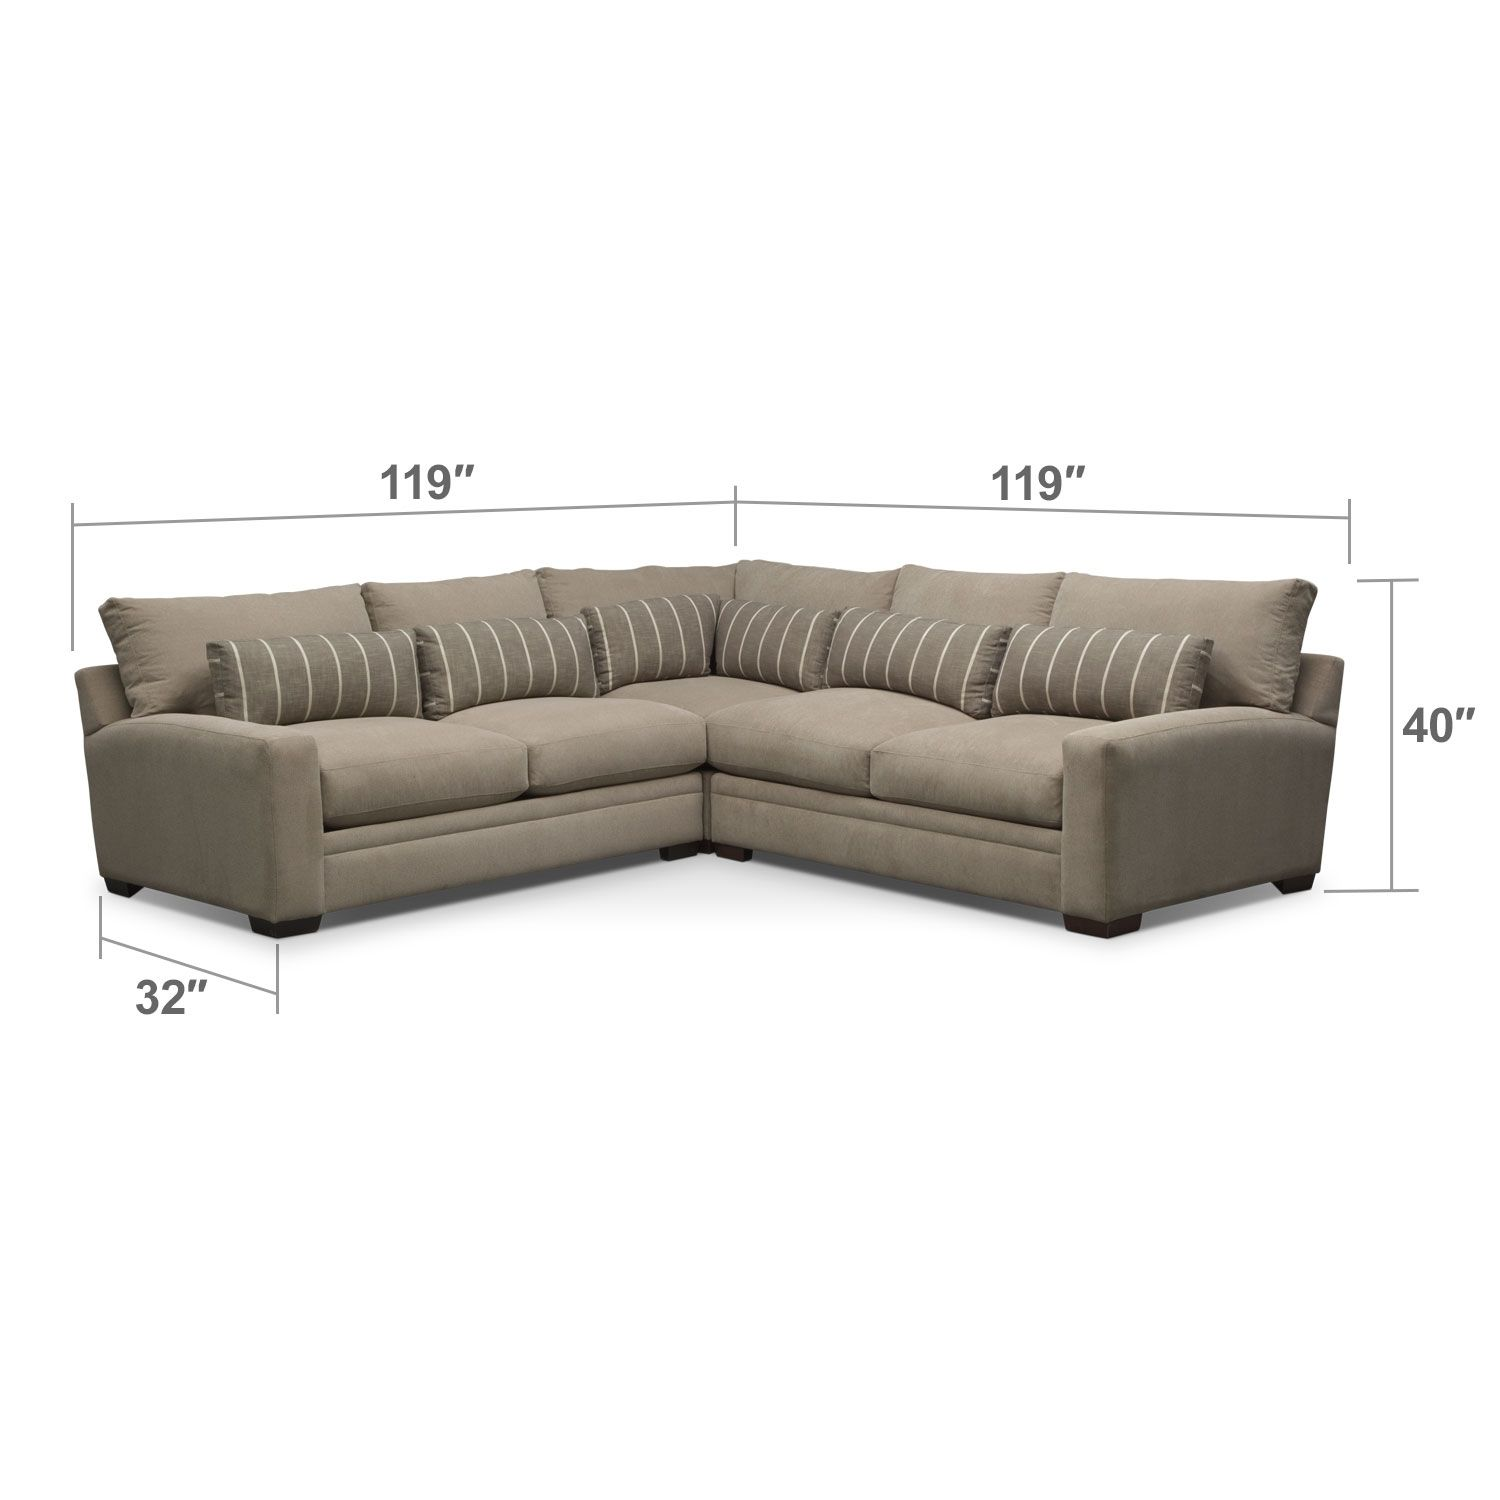 Ventura 3 Pc Sectional Furniture Cheap Furniture Stores Value City Furniture